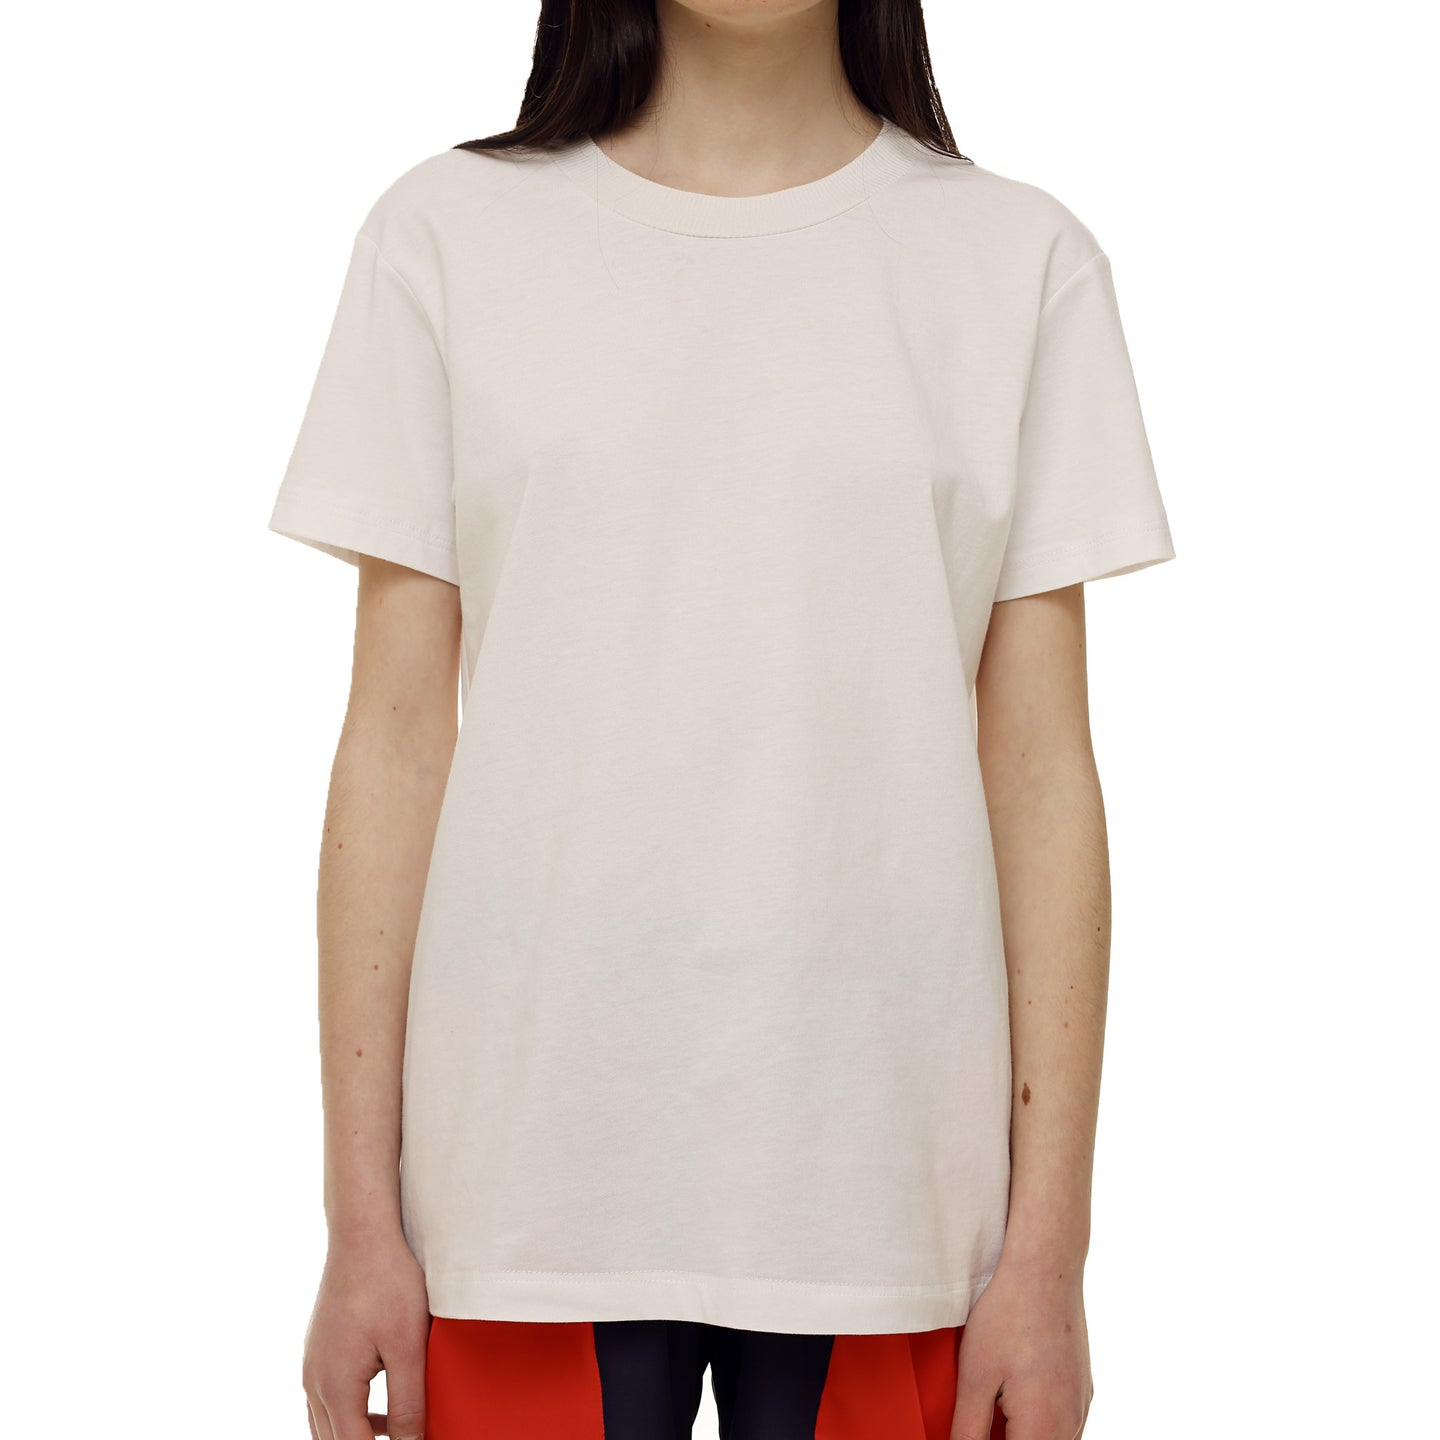 White Cotton T-shirt - krawaii.com